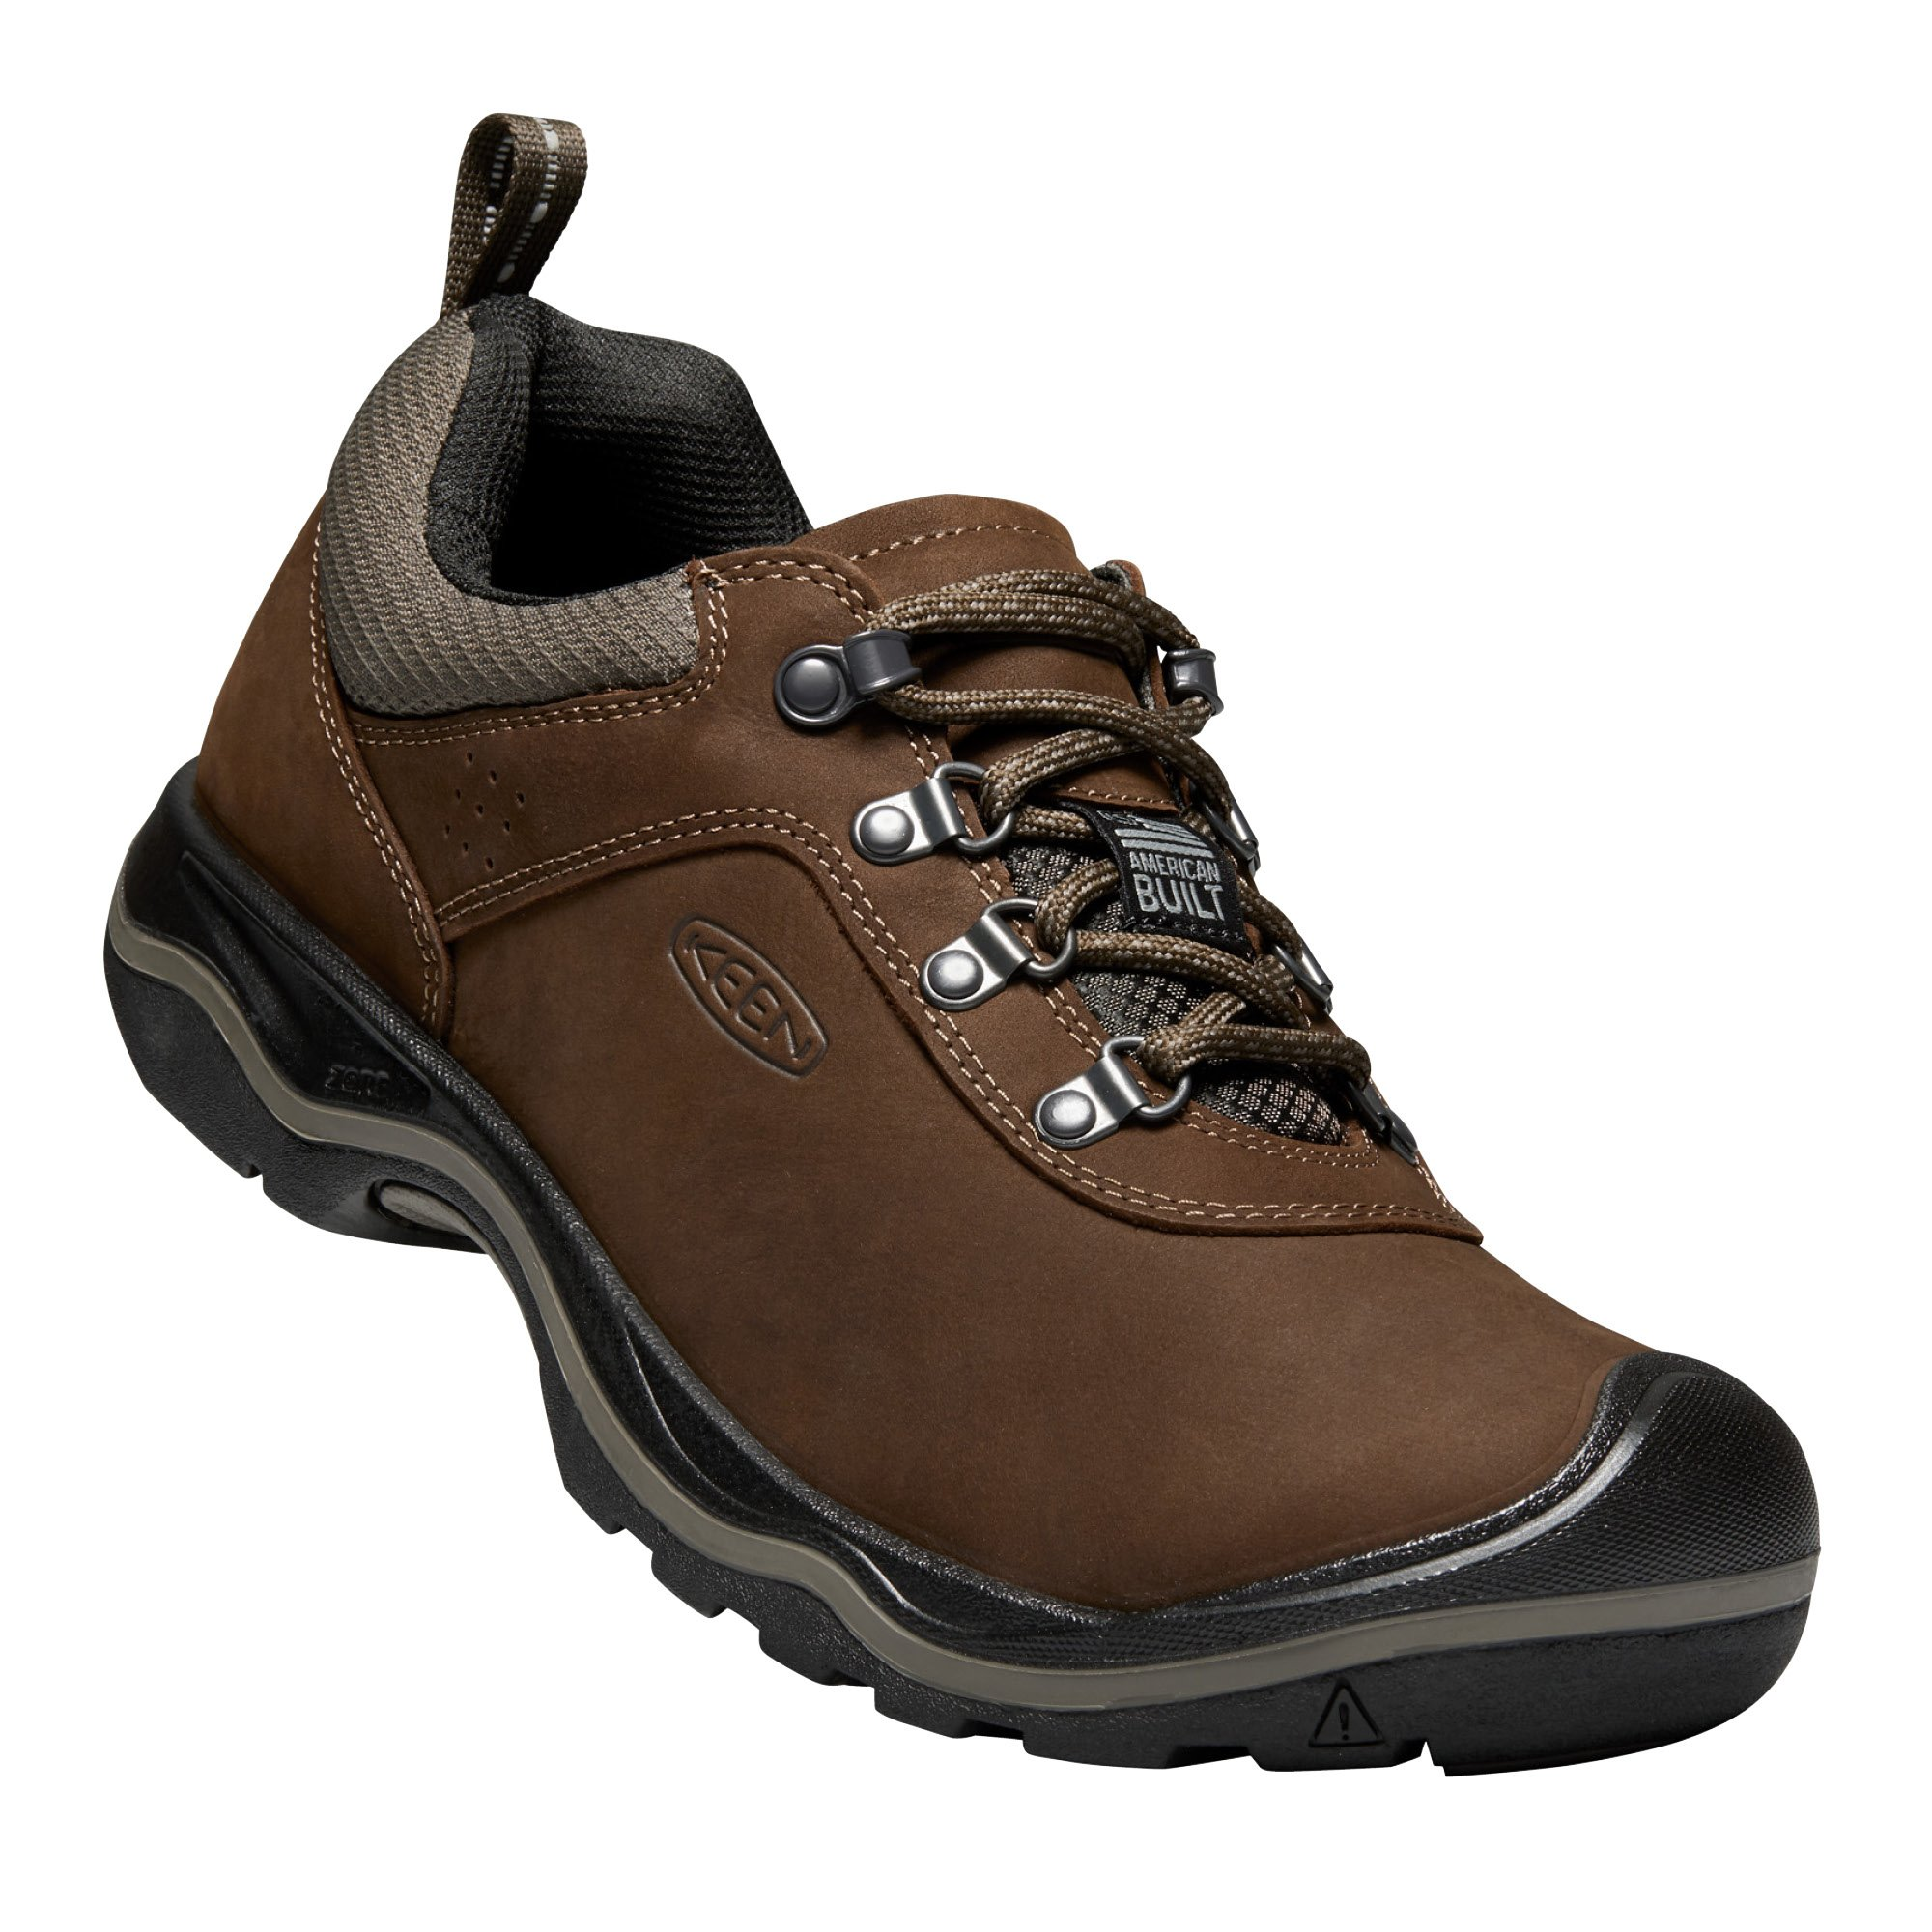 KEEN Men's Rialto Lace-m Shoes, 9 M US, Dark Earth by KEEN